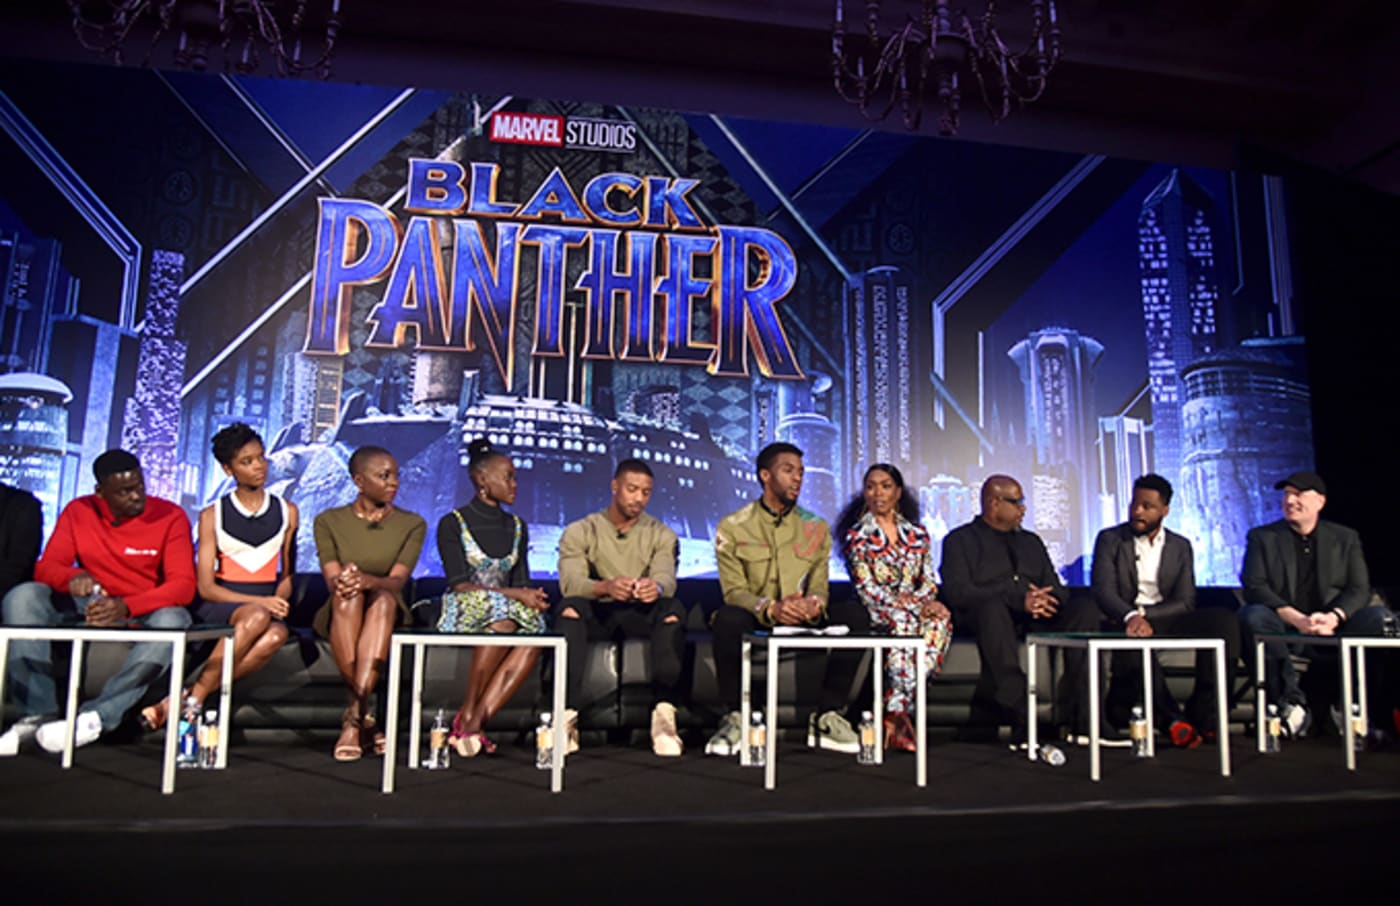 Black Panther cast.